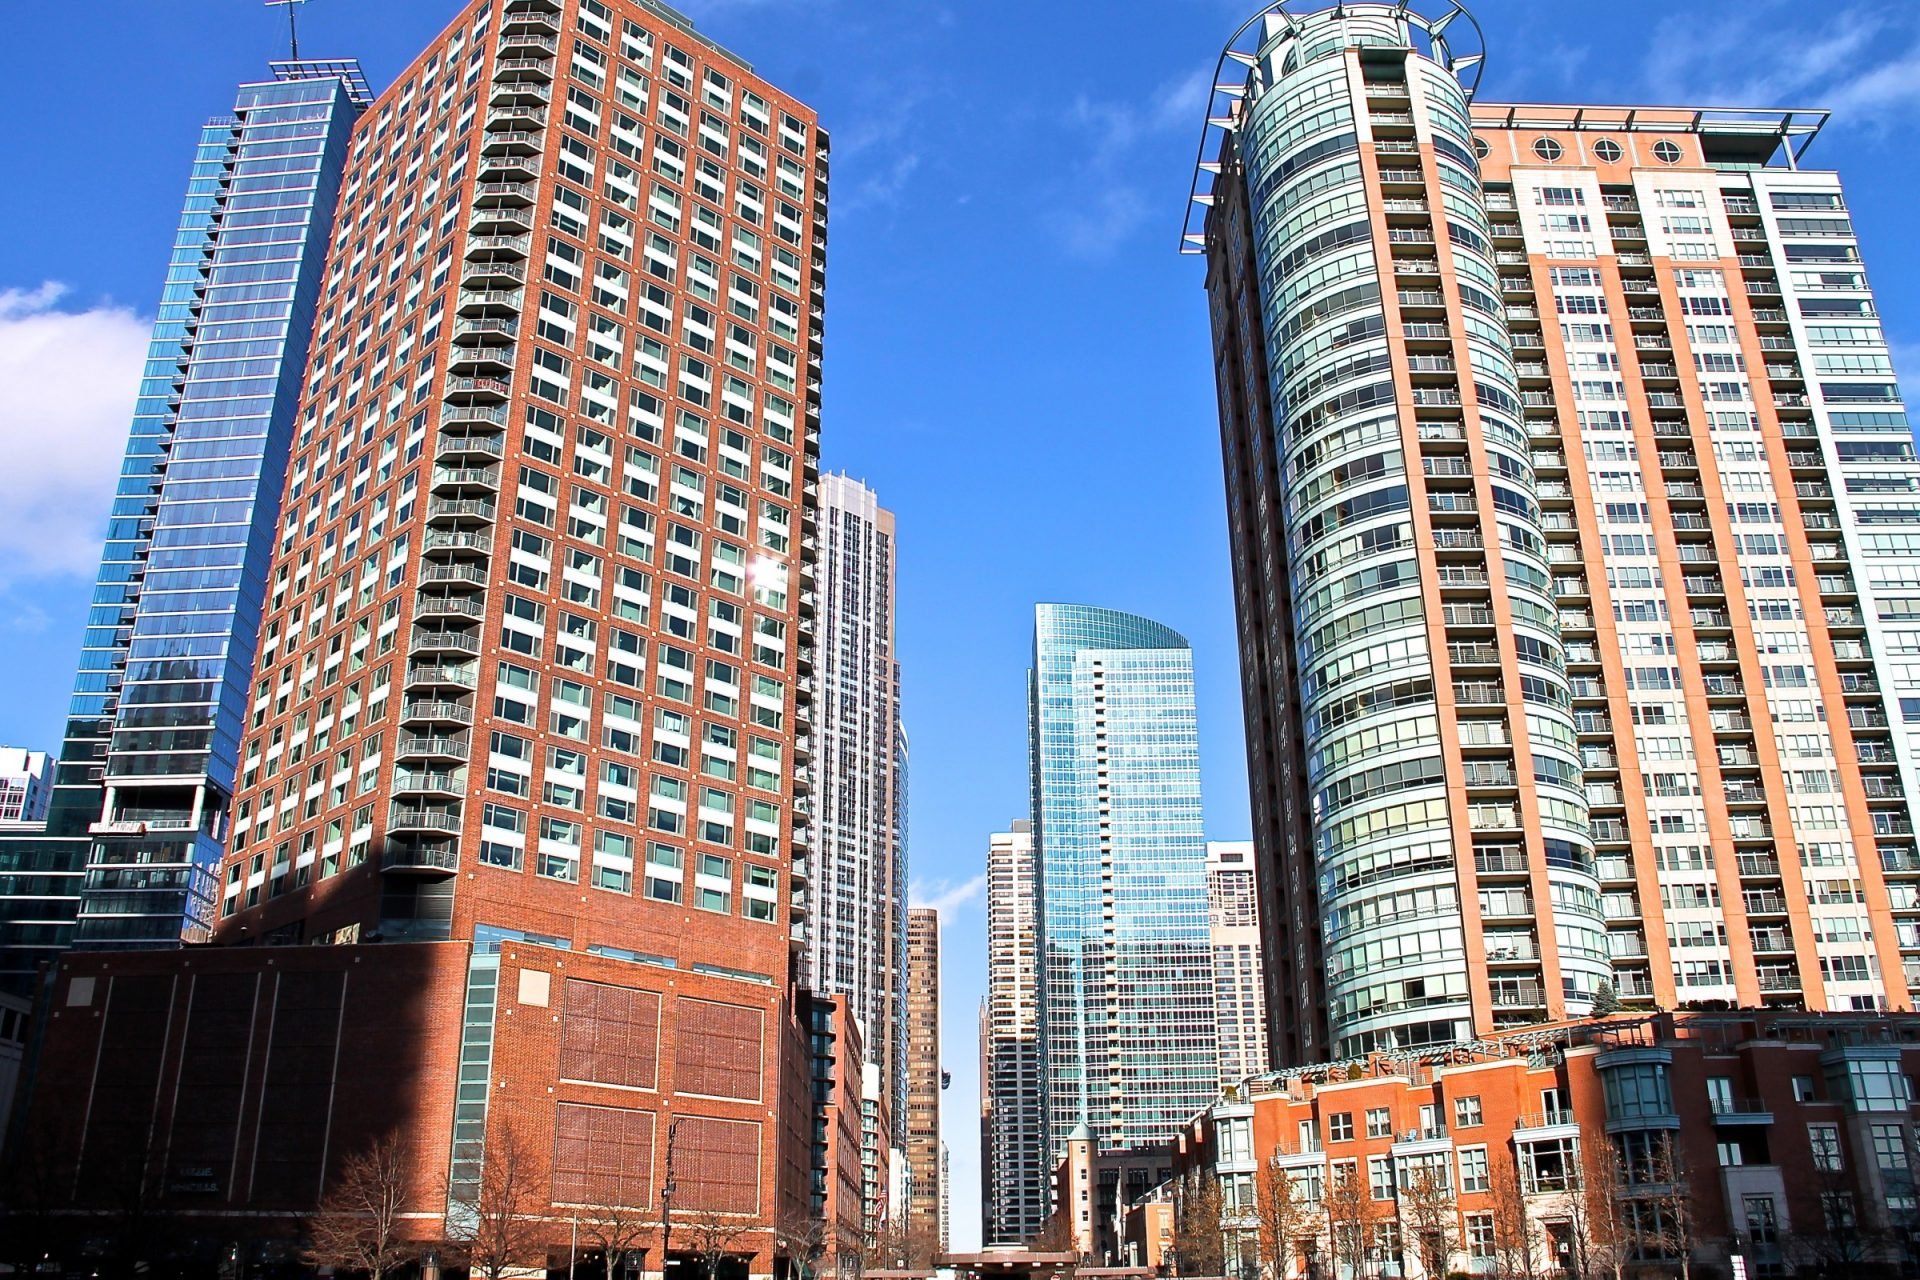 Tall Brick & Glass Buildings in City